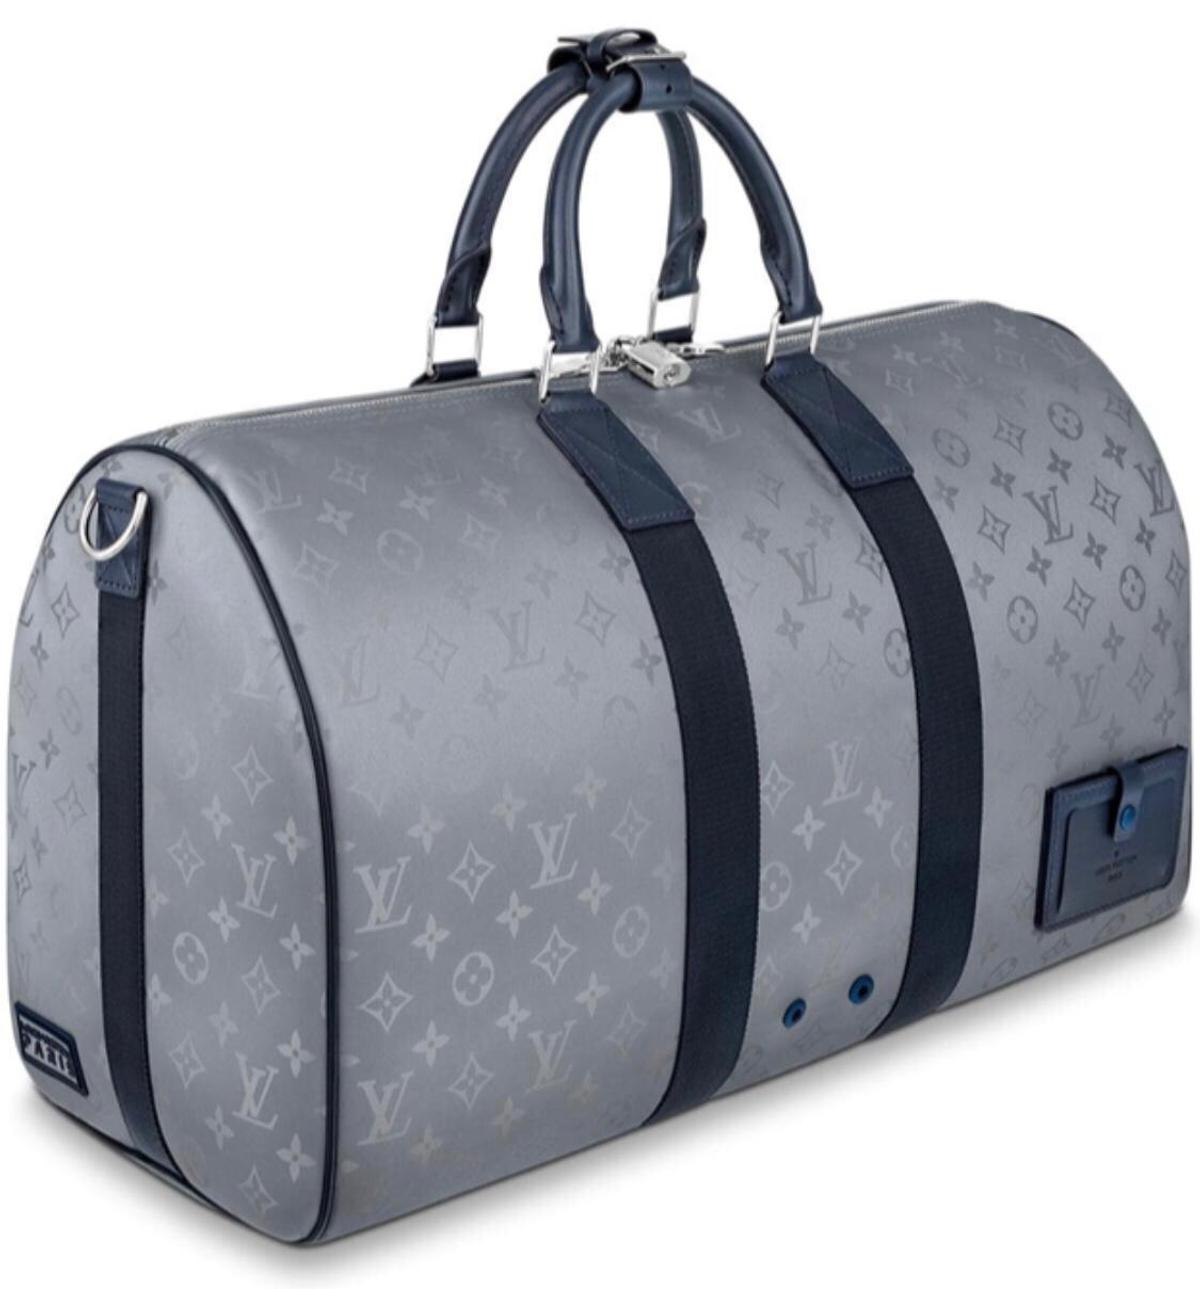 3aa0eef51c5 LOUIS VUITTON - M44170 KEEPALL BANDOULIERE 50